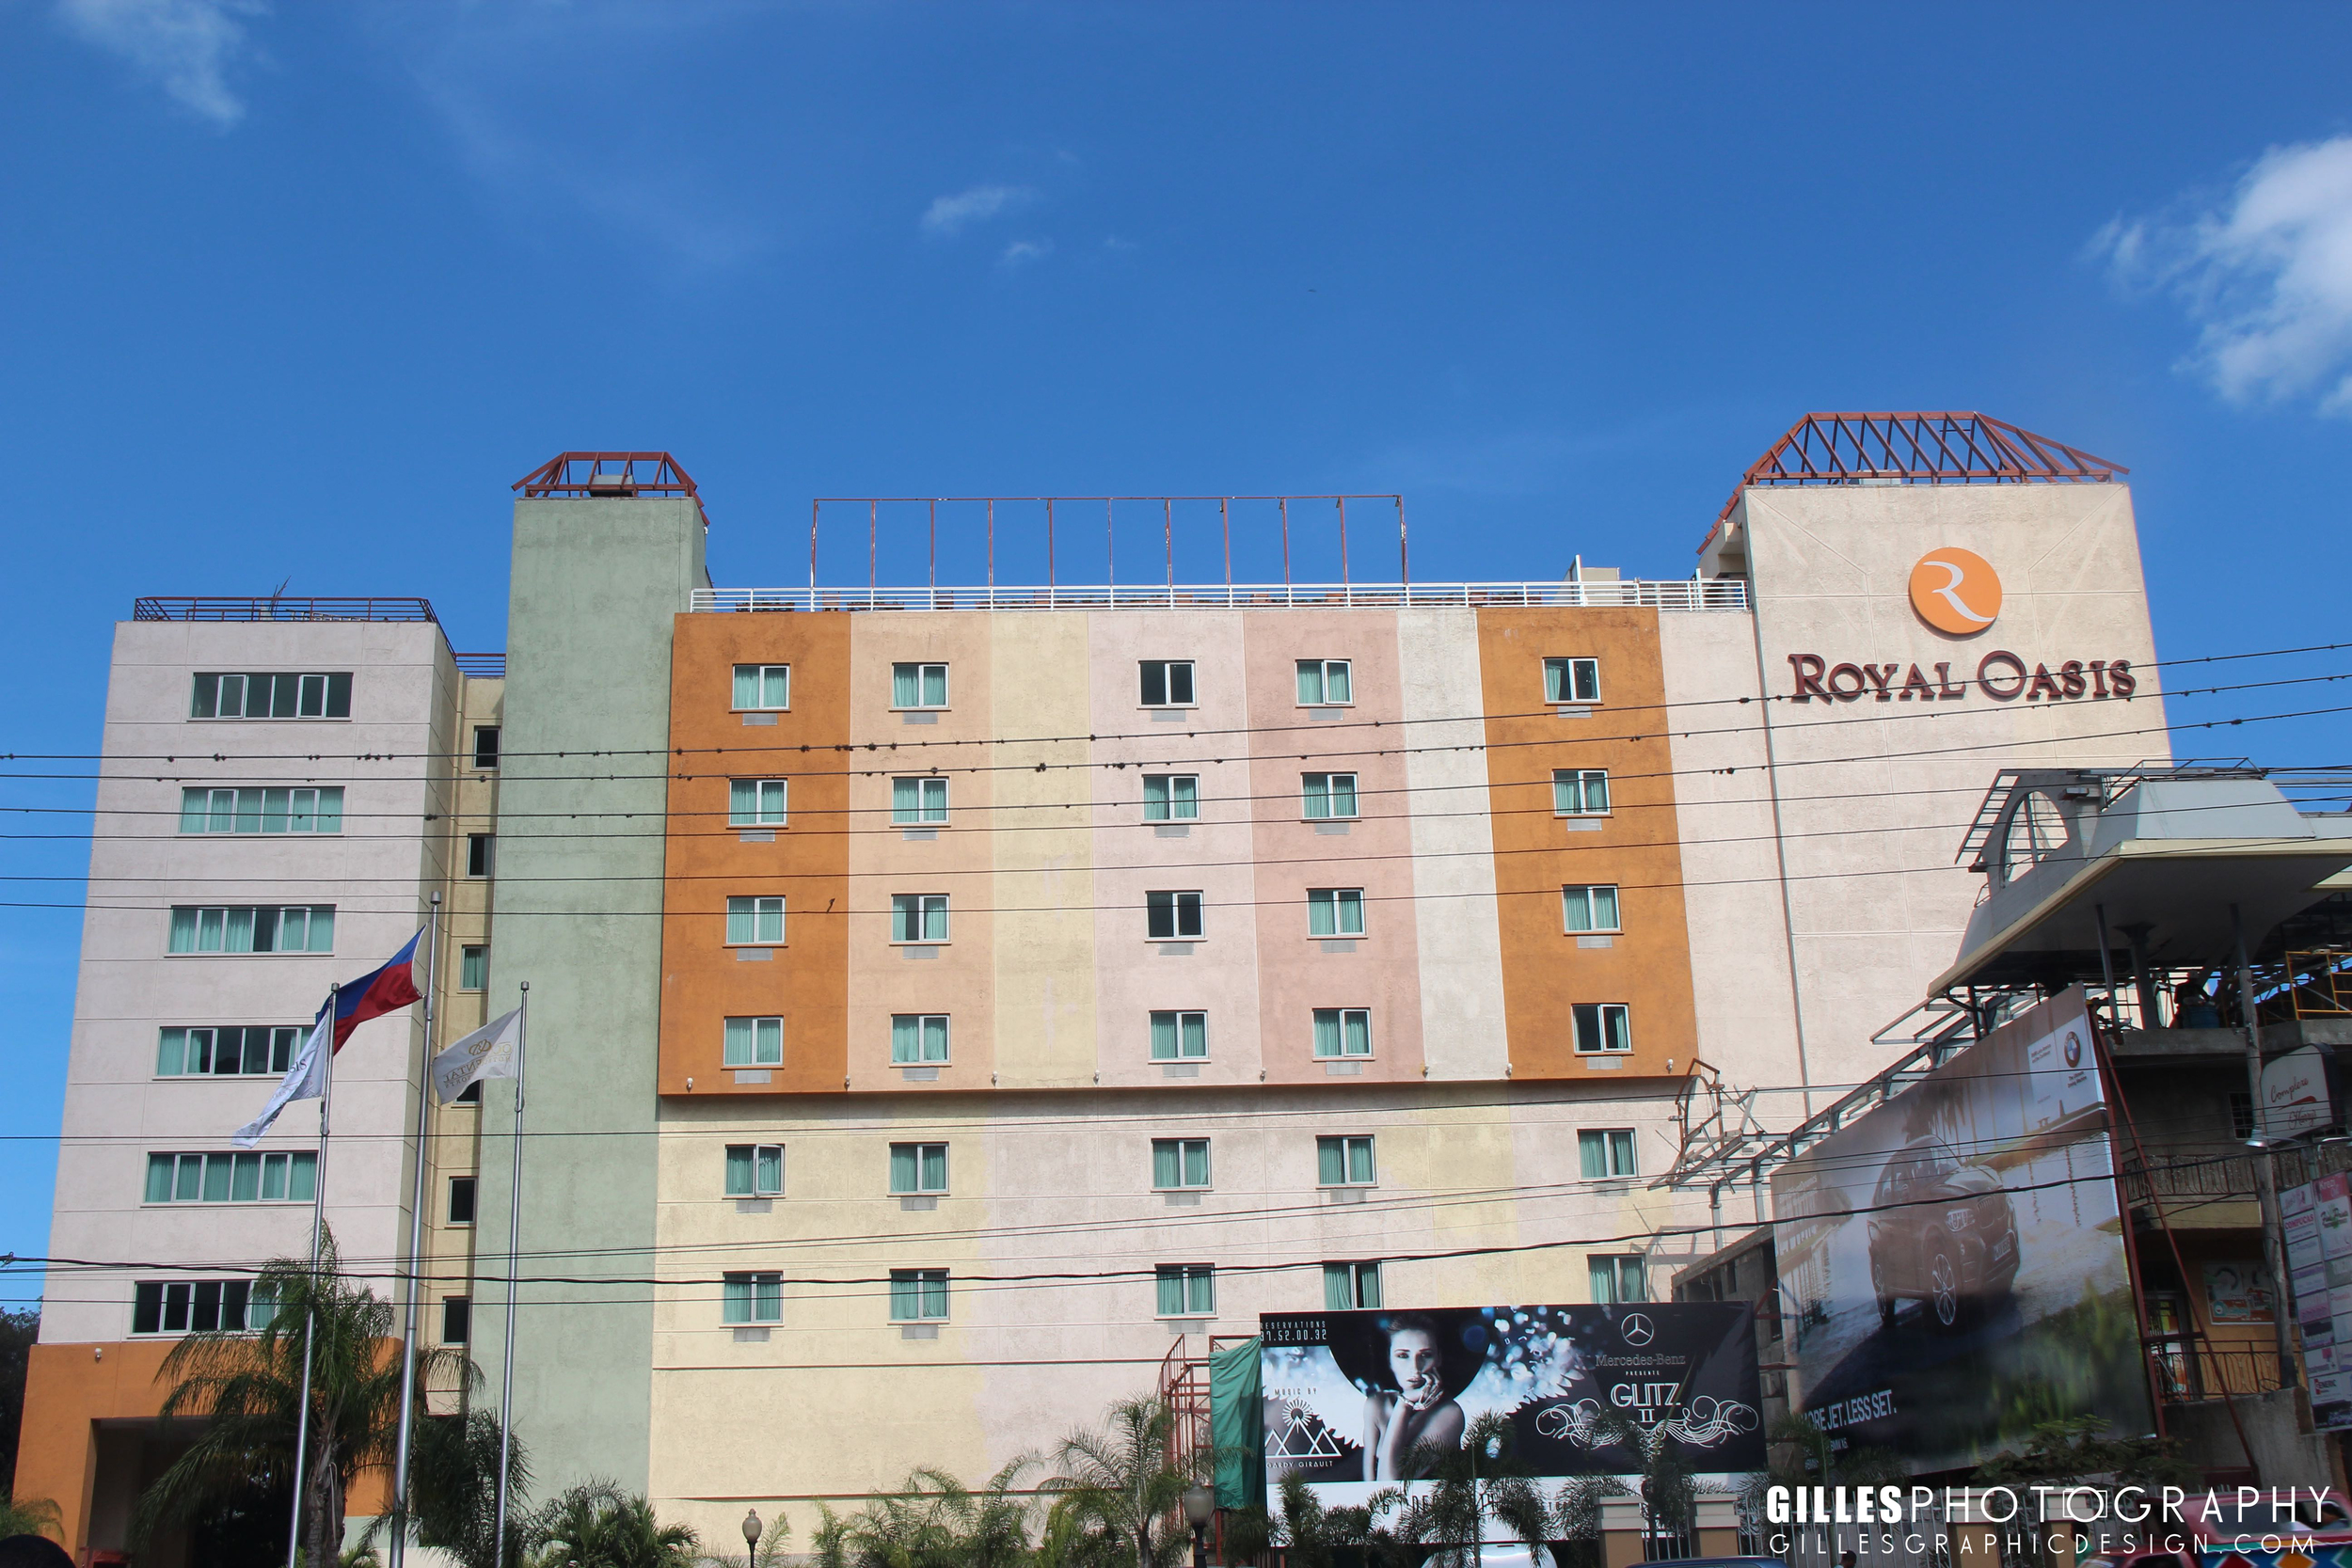 The famous Royal Oasis Hotel